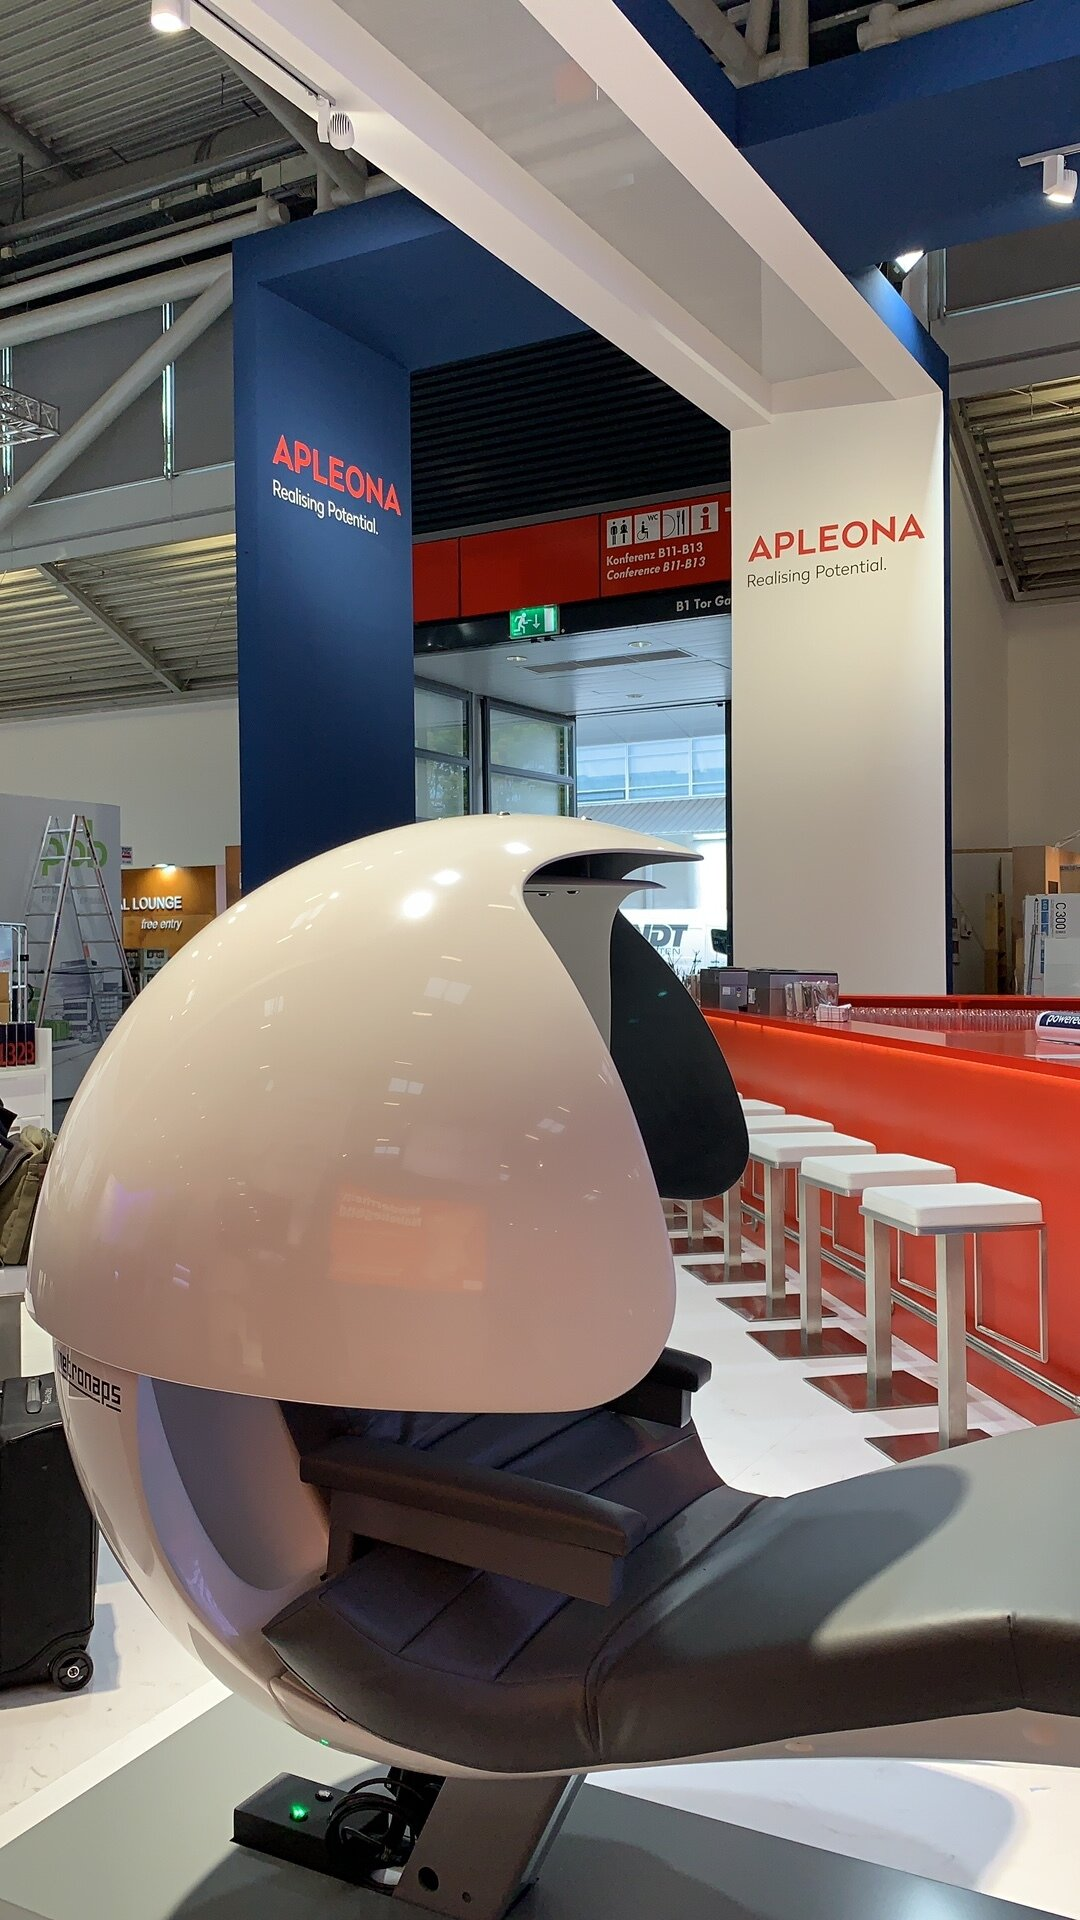 In partnership with Apleona, MetroNaps was featured at the EXPO Real Conference in Munich on October 7-9, 2019. EXPO Real is Europe's largest B2B trade fair for real estate and investment. Learn more  here.